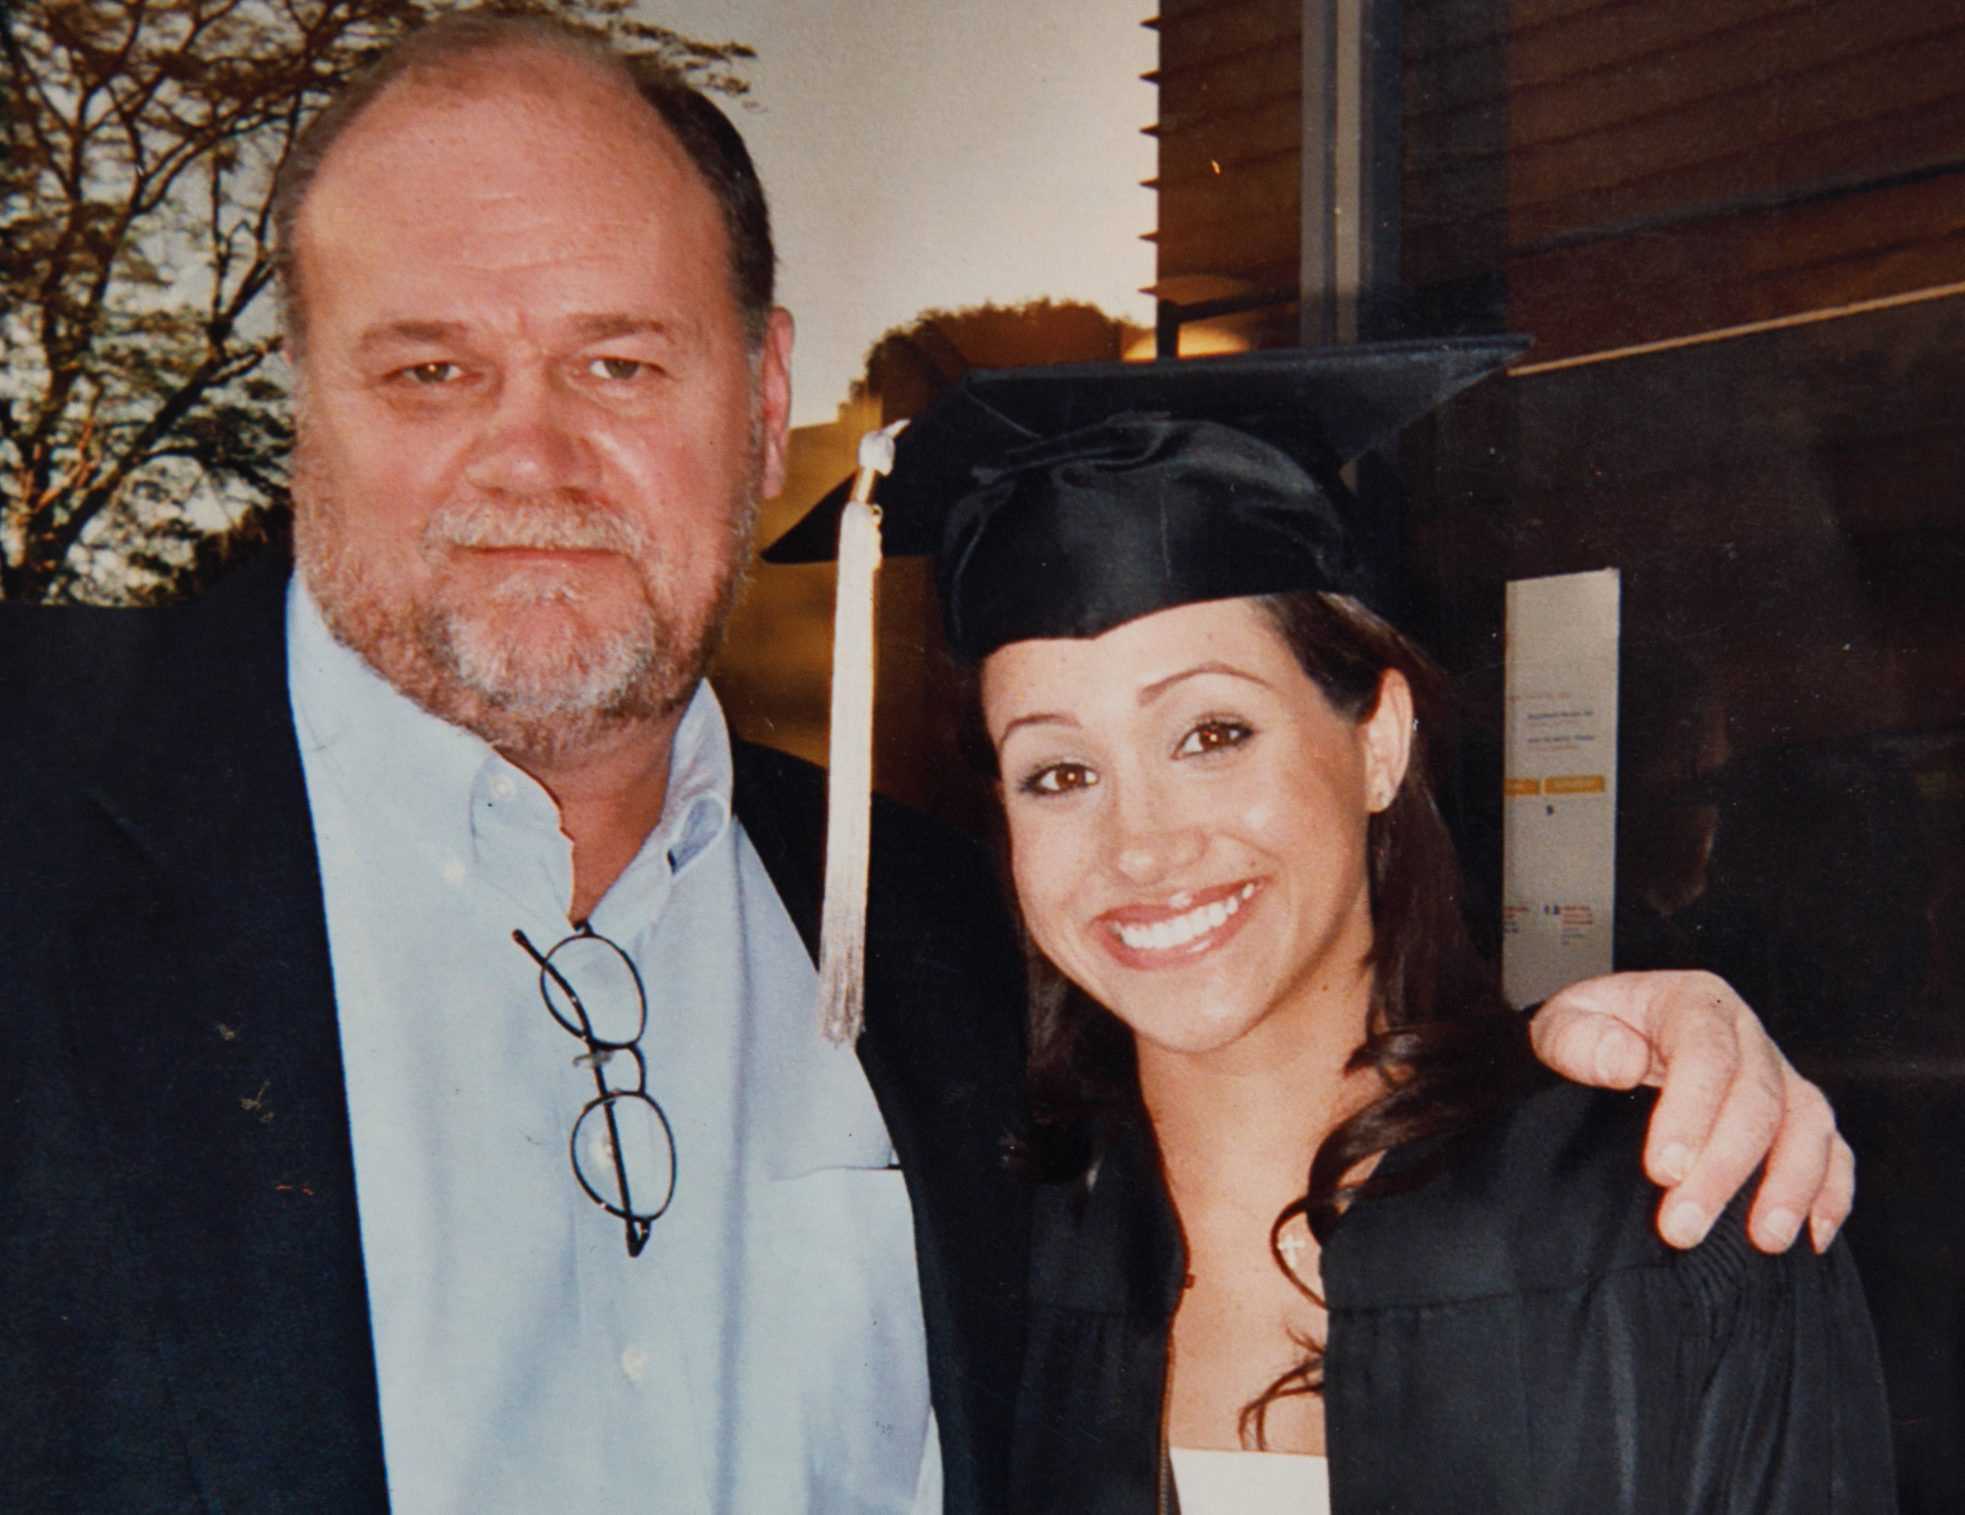 """""""Scheming"""" Meghan Markle was behind a devastating defamatory campaign against her fragile dad Thomas, court documents say - The Sun"""